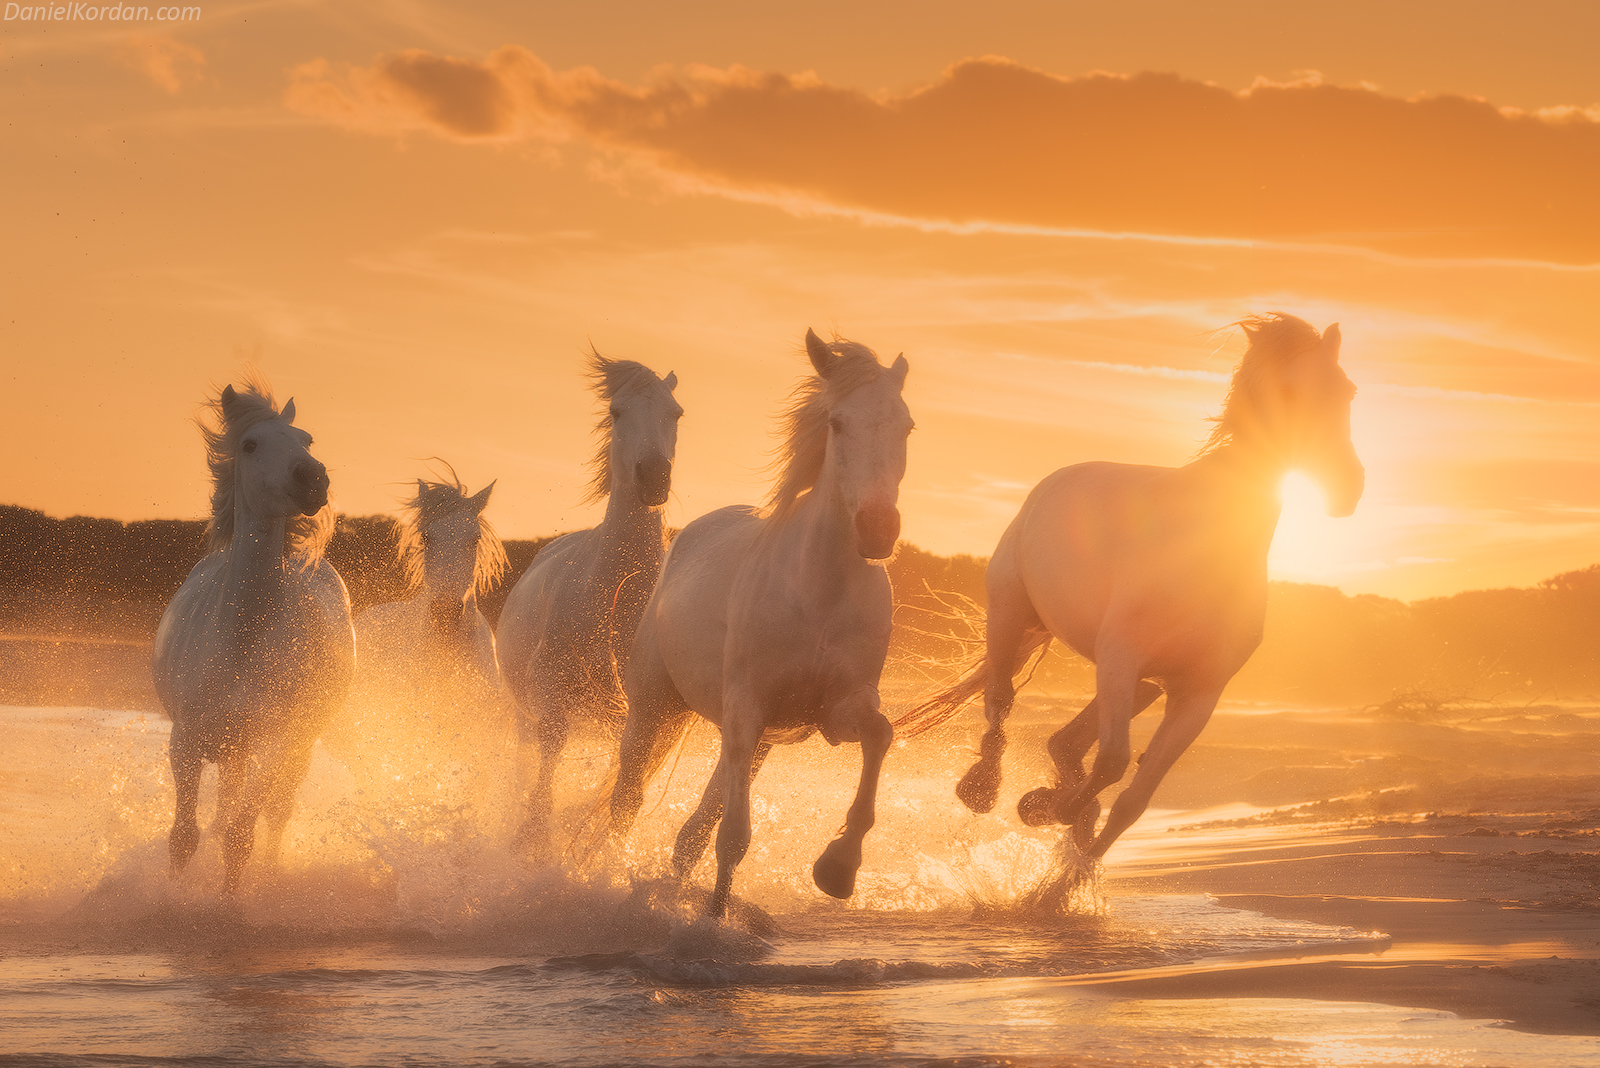 White Horses of Camargue | 5 Day Photo Tour in France - day 4